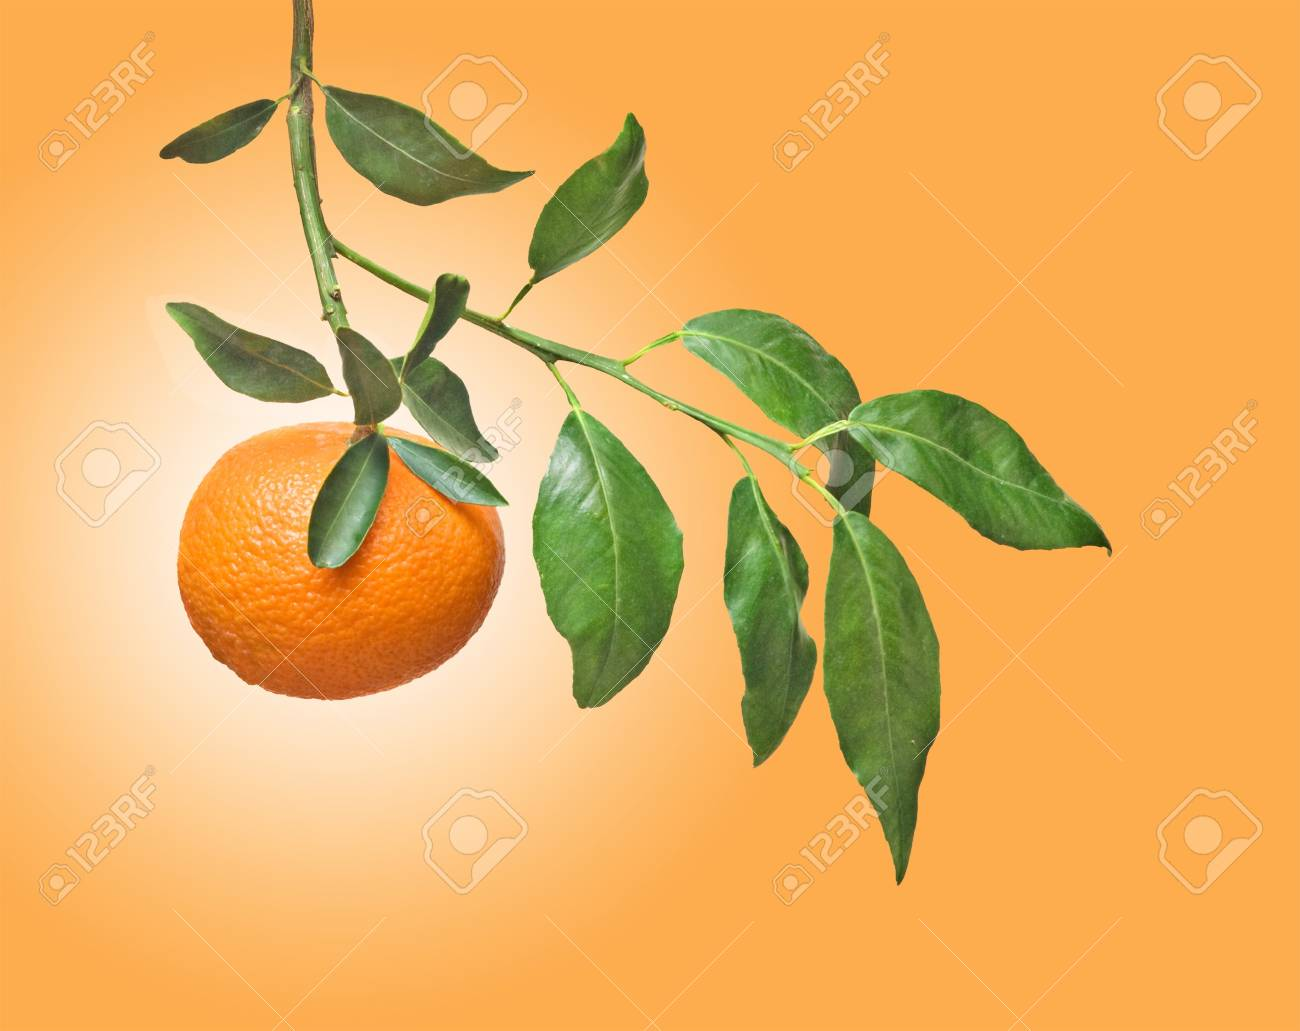 Tangerines on branch Stock Photo - 6910752